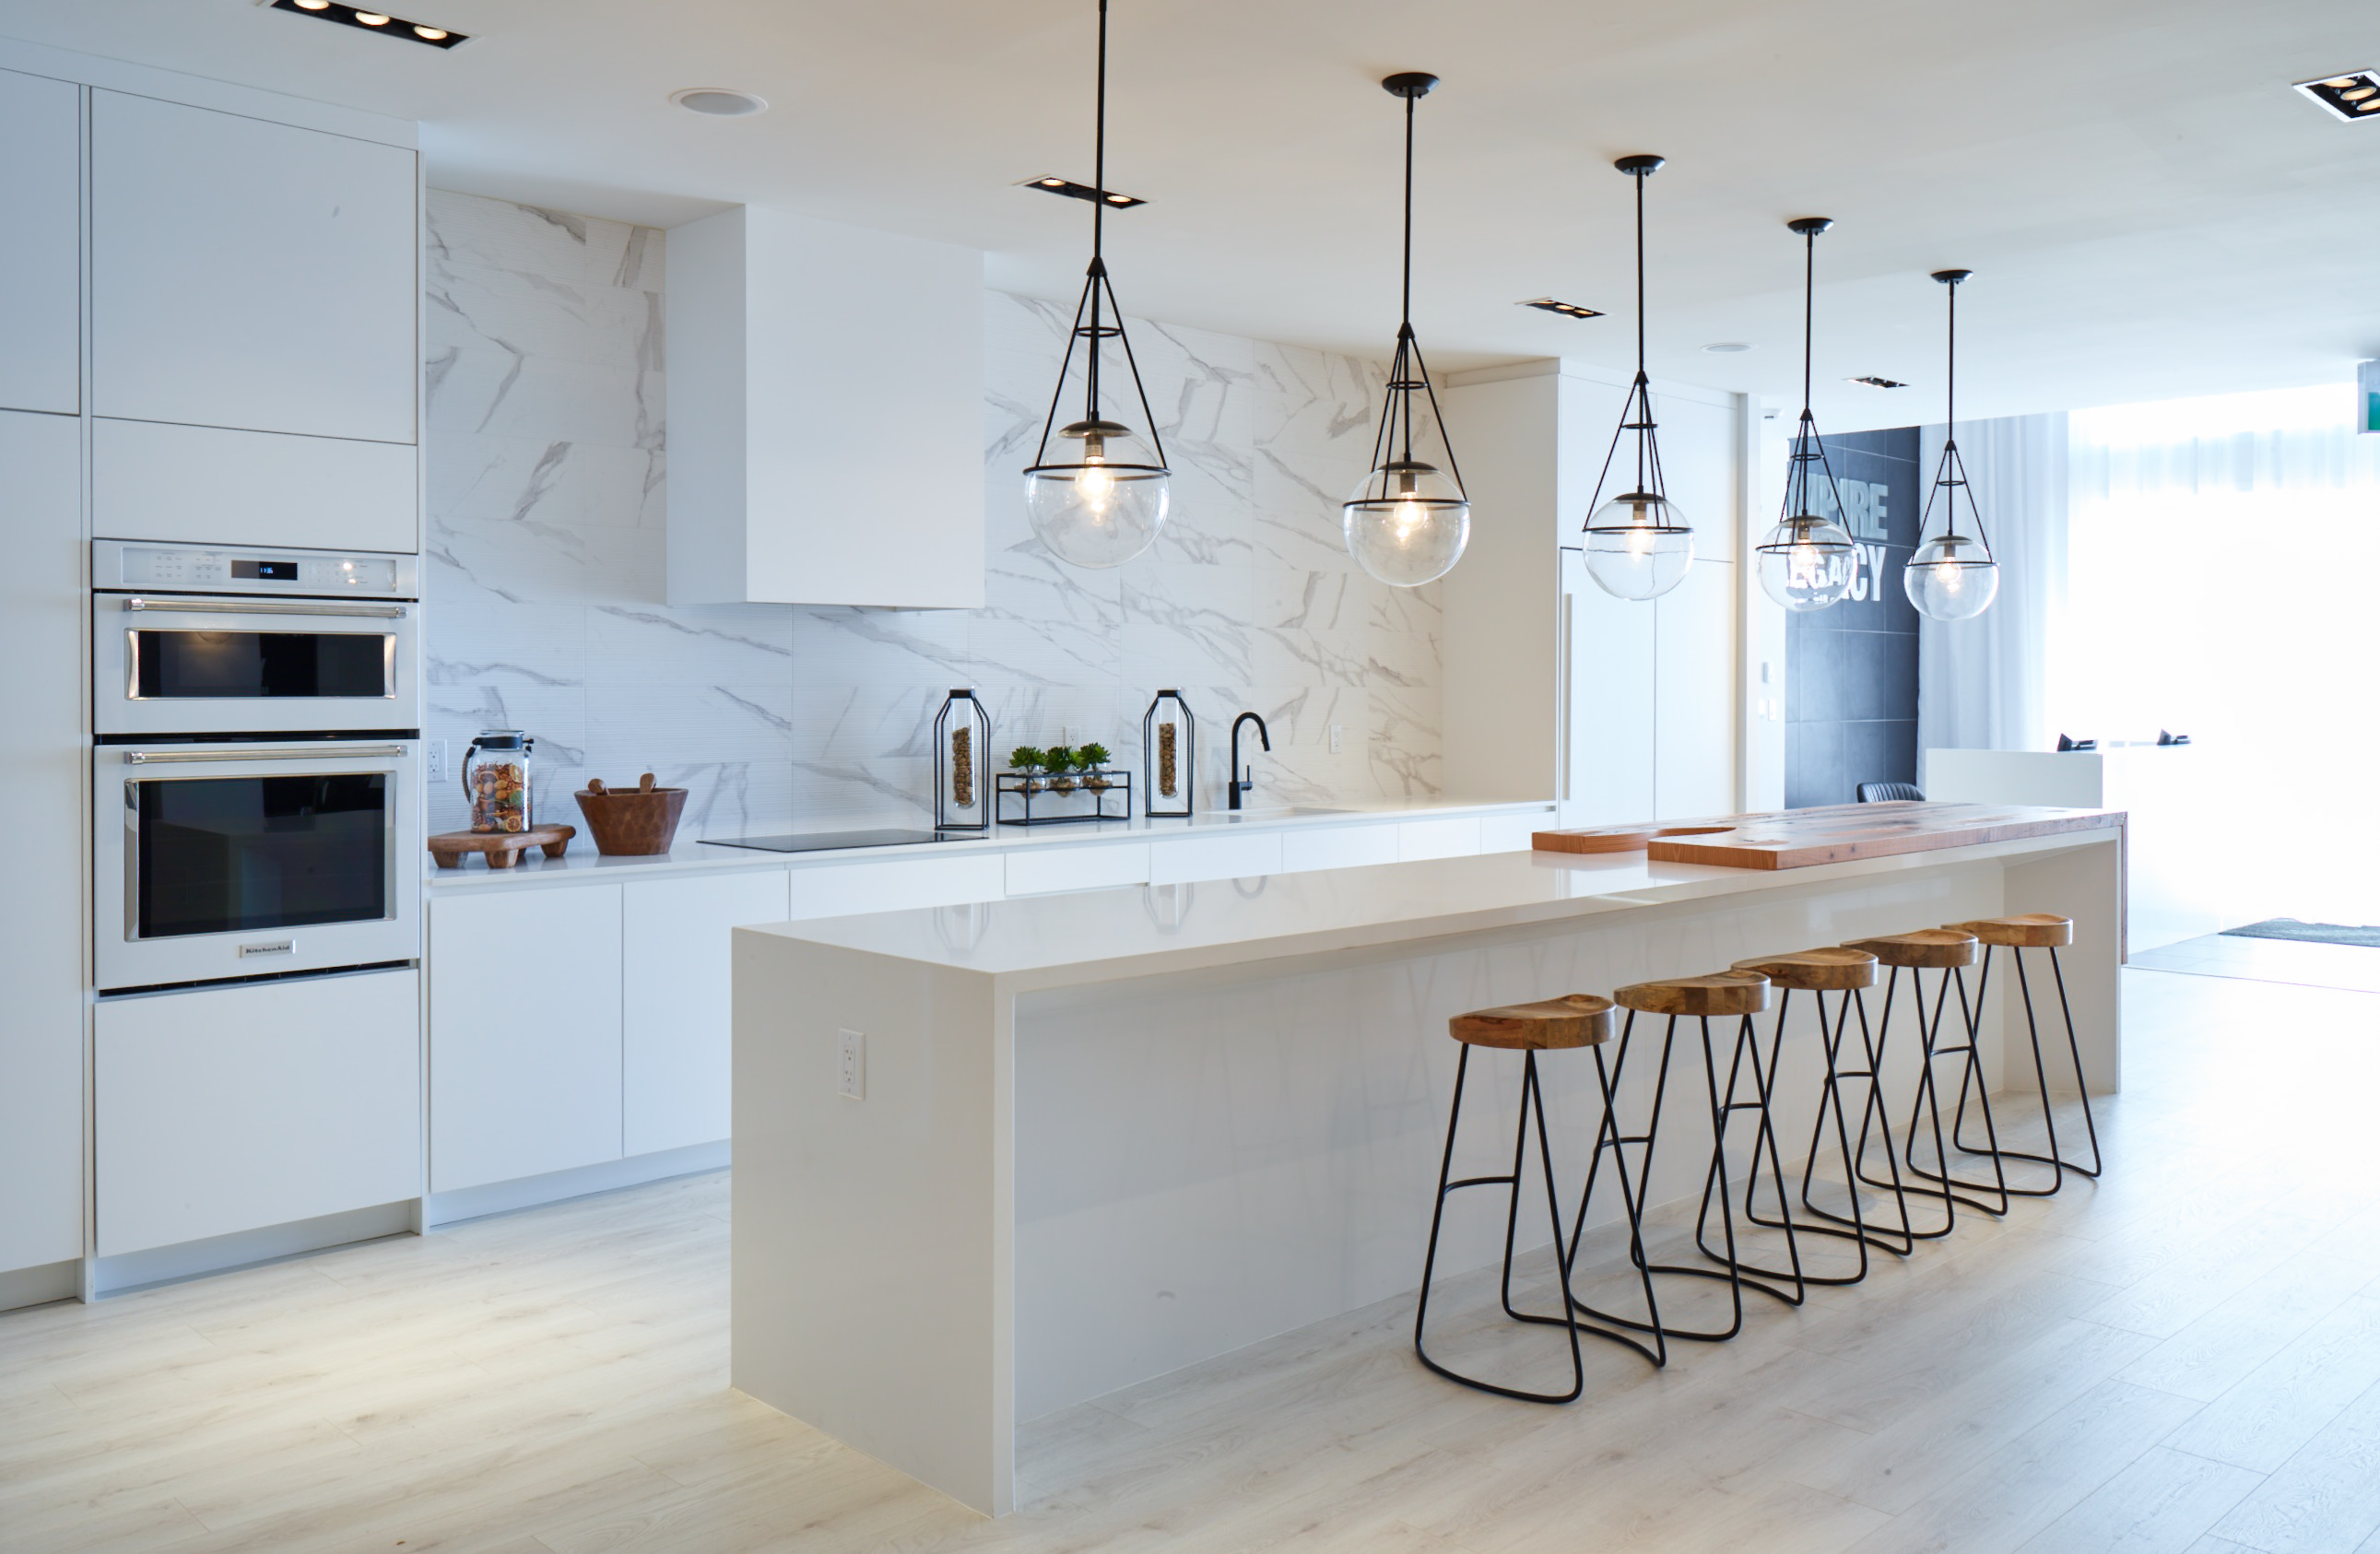 Empire Thorold white kitchen with white marble backsplash, metal and wood stools, and black metal pendant lights